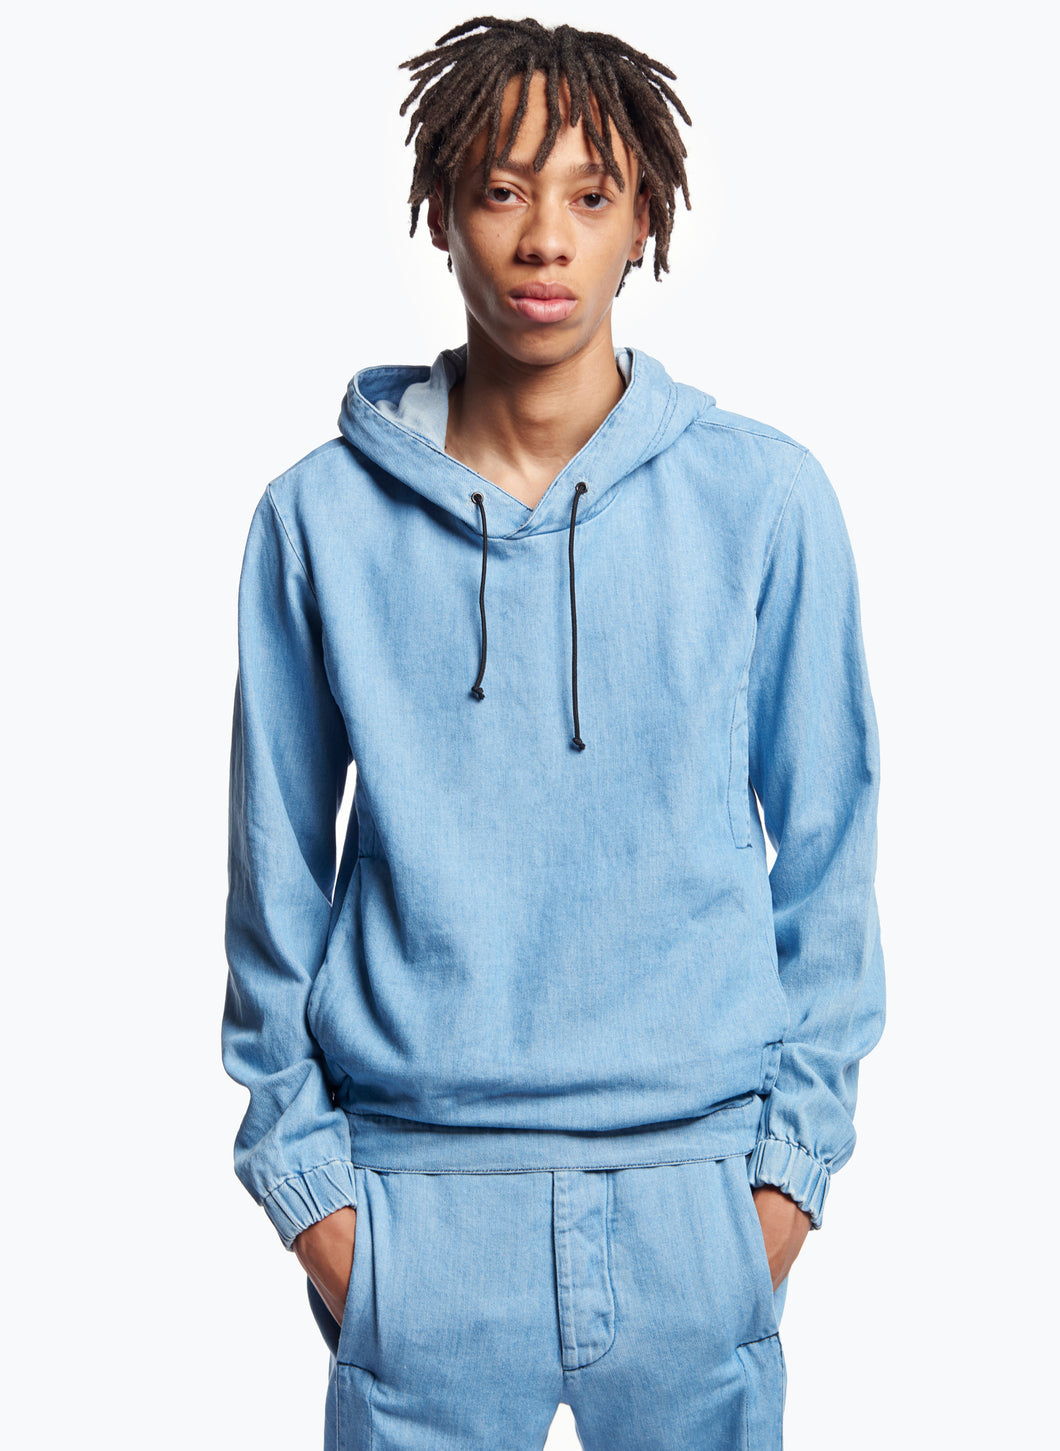 Hooded Sweatshirt with Side Cutouts in Bleached Denim